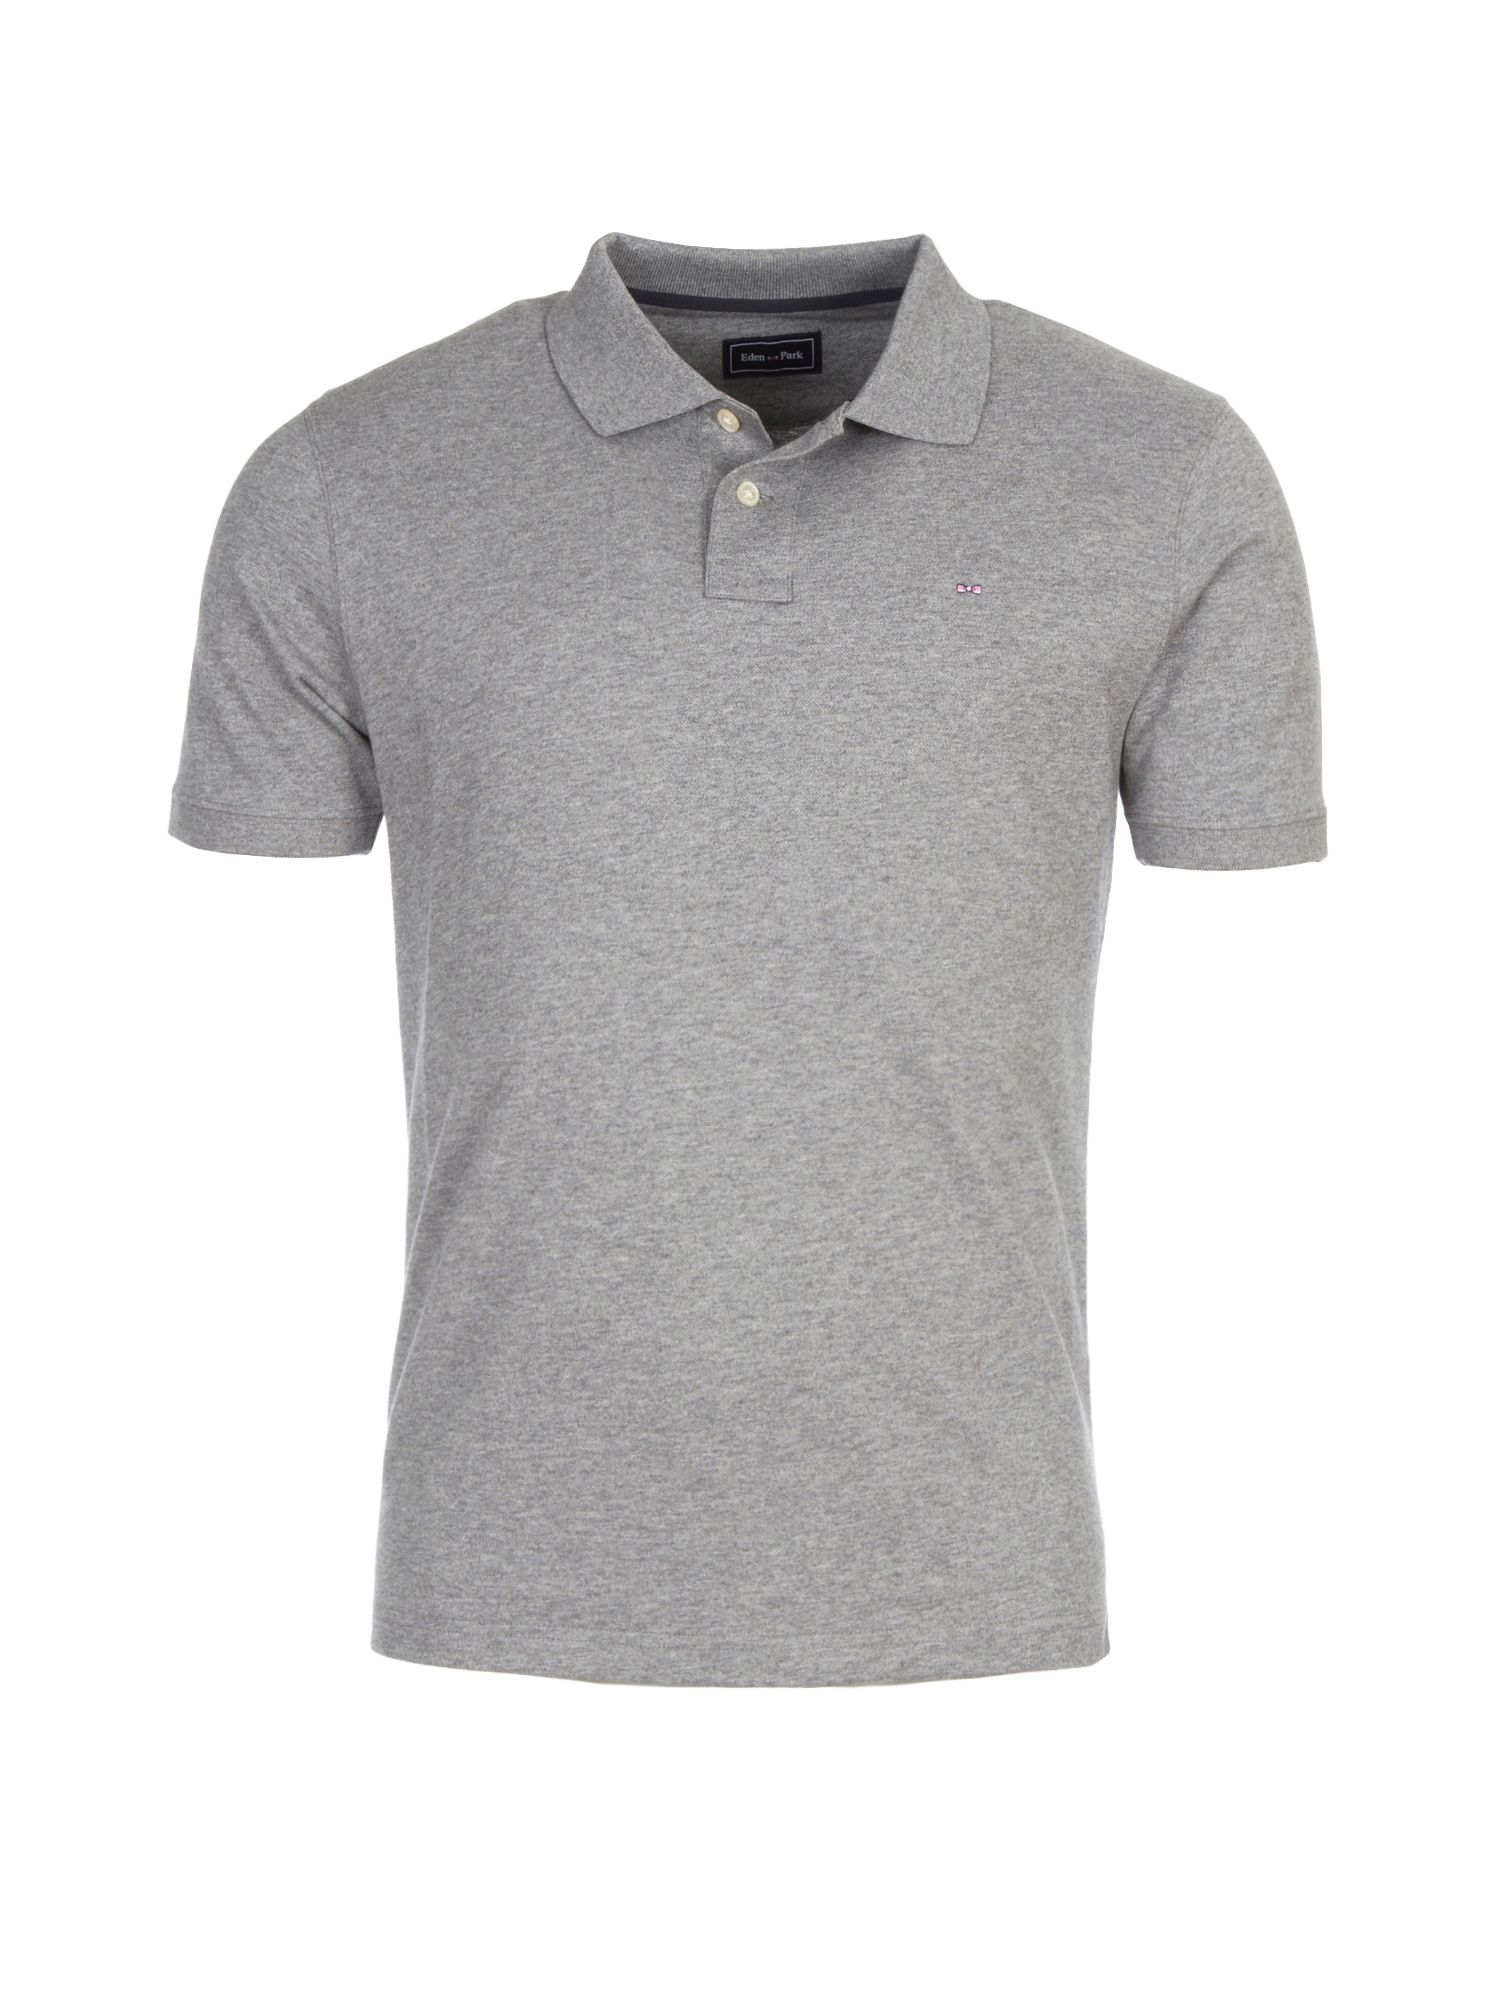 Men's Eden Park Polo Basic Stretch, Grey